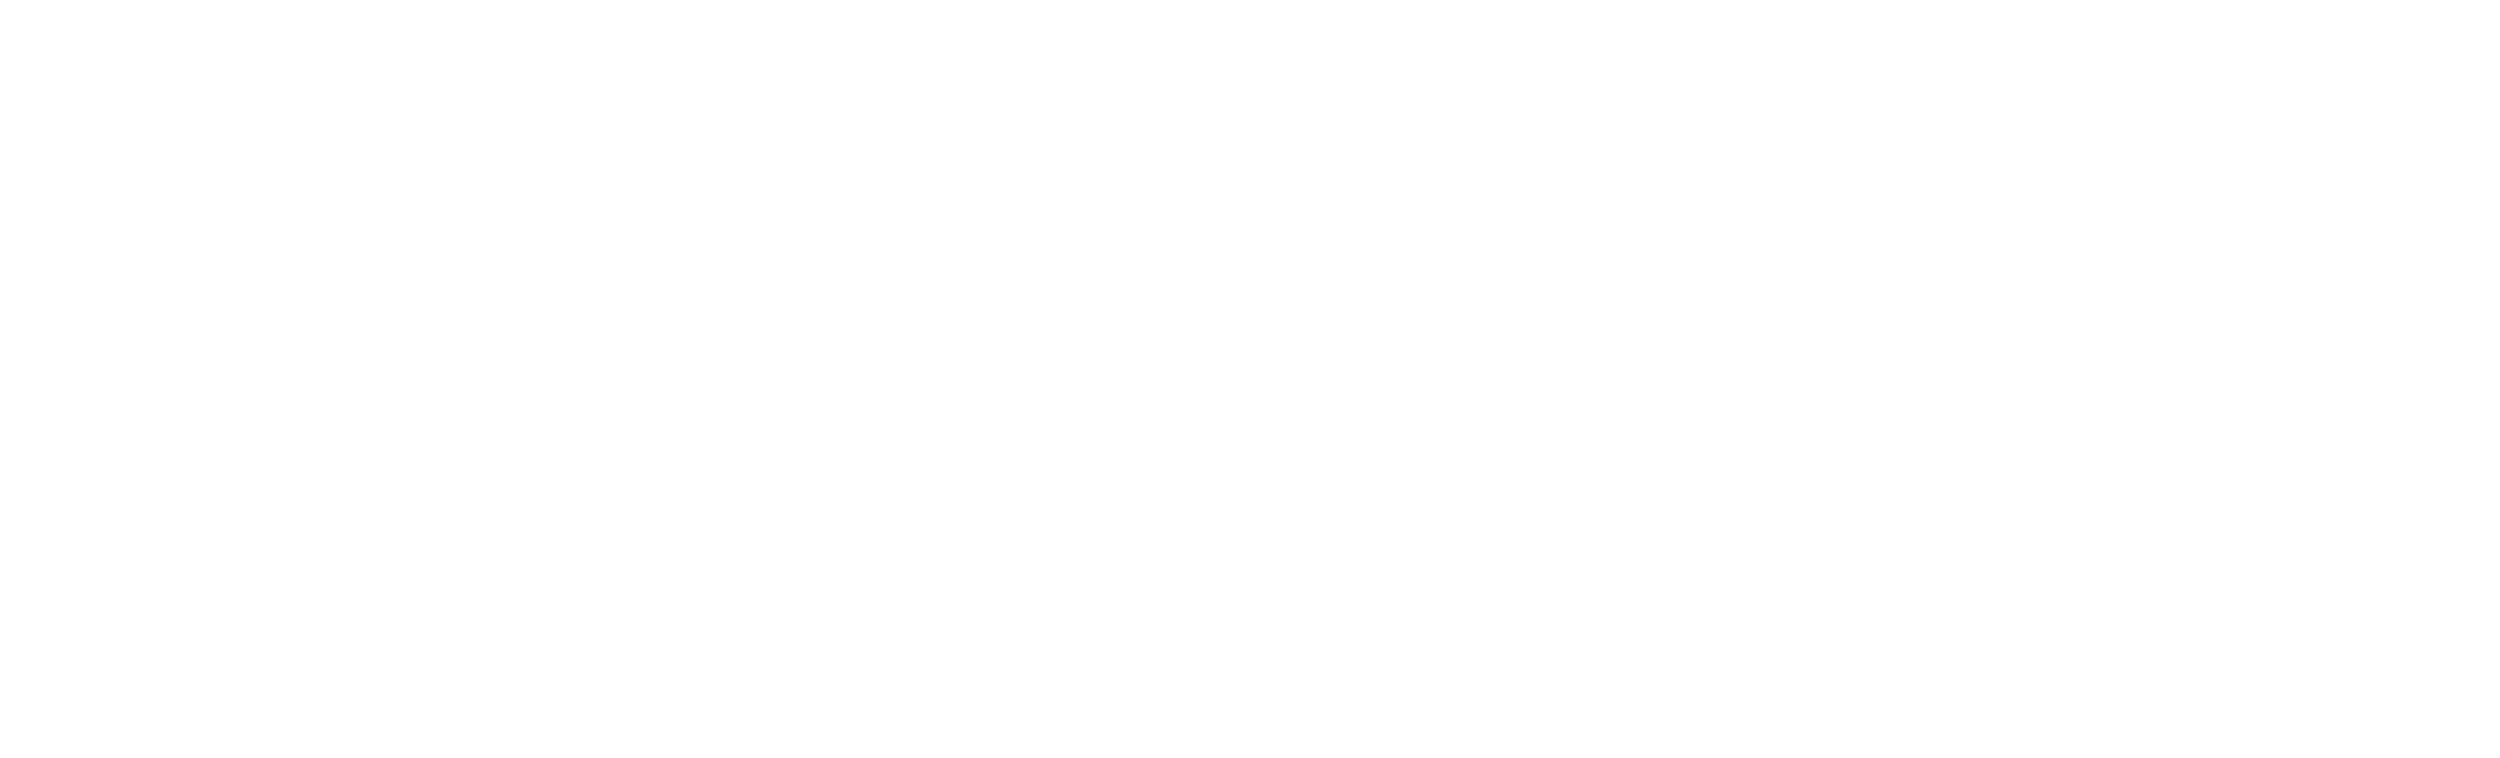 Review- stomach full & happy